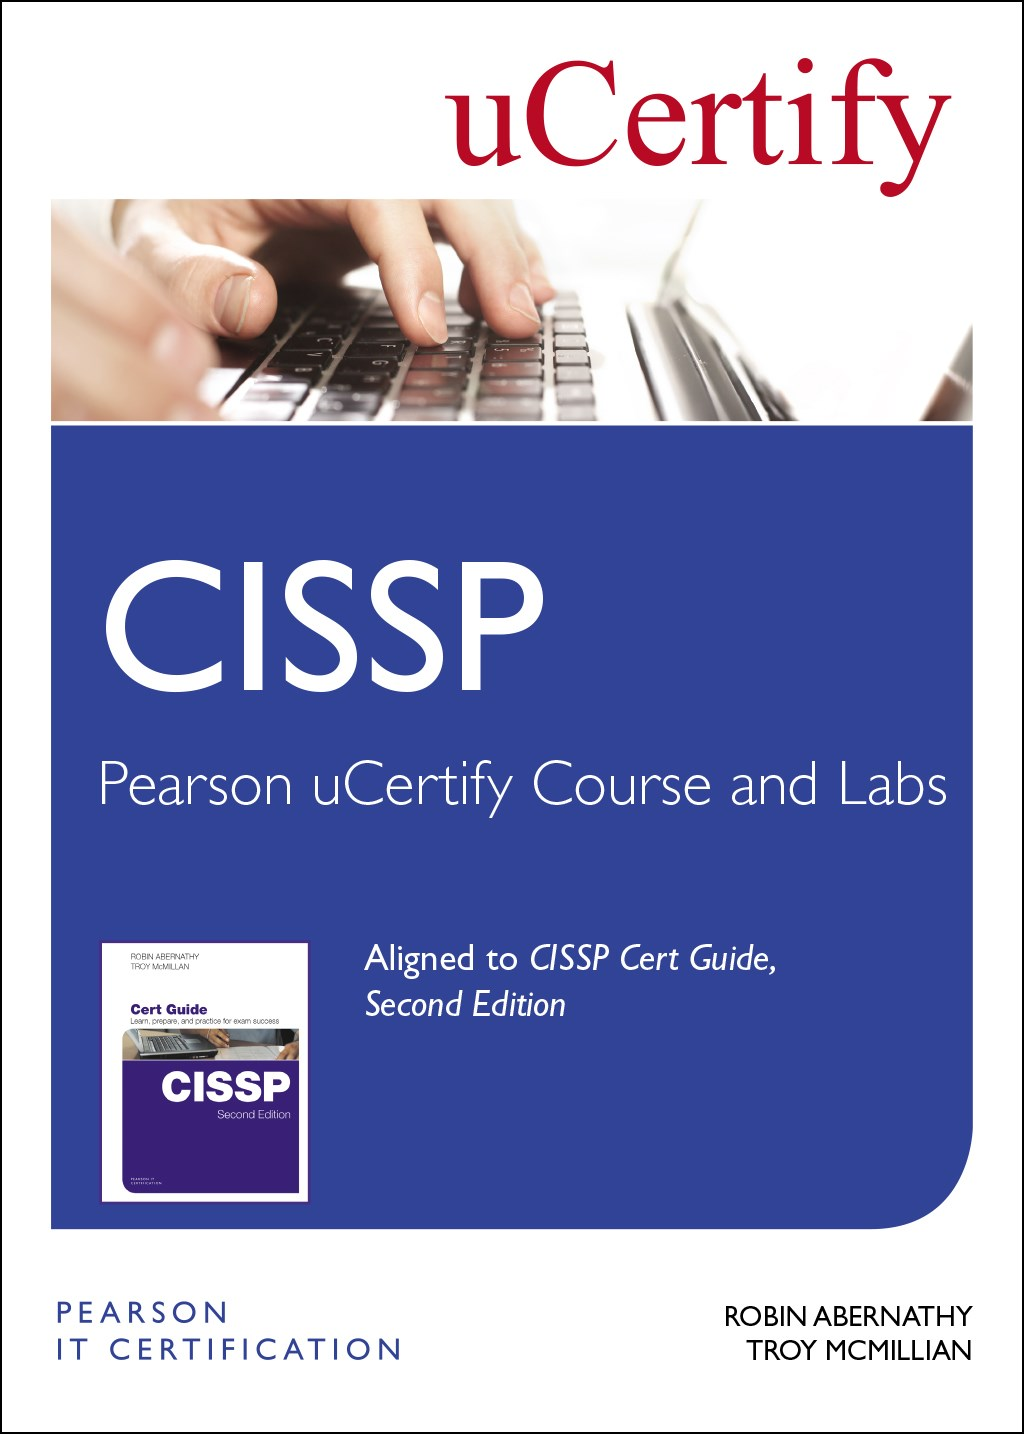 CISSP Pearson uCertify Course and Labs Access Card